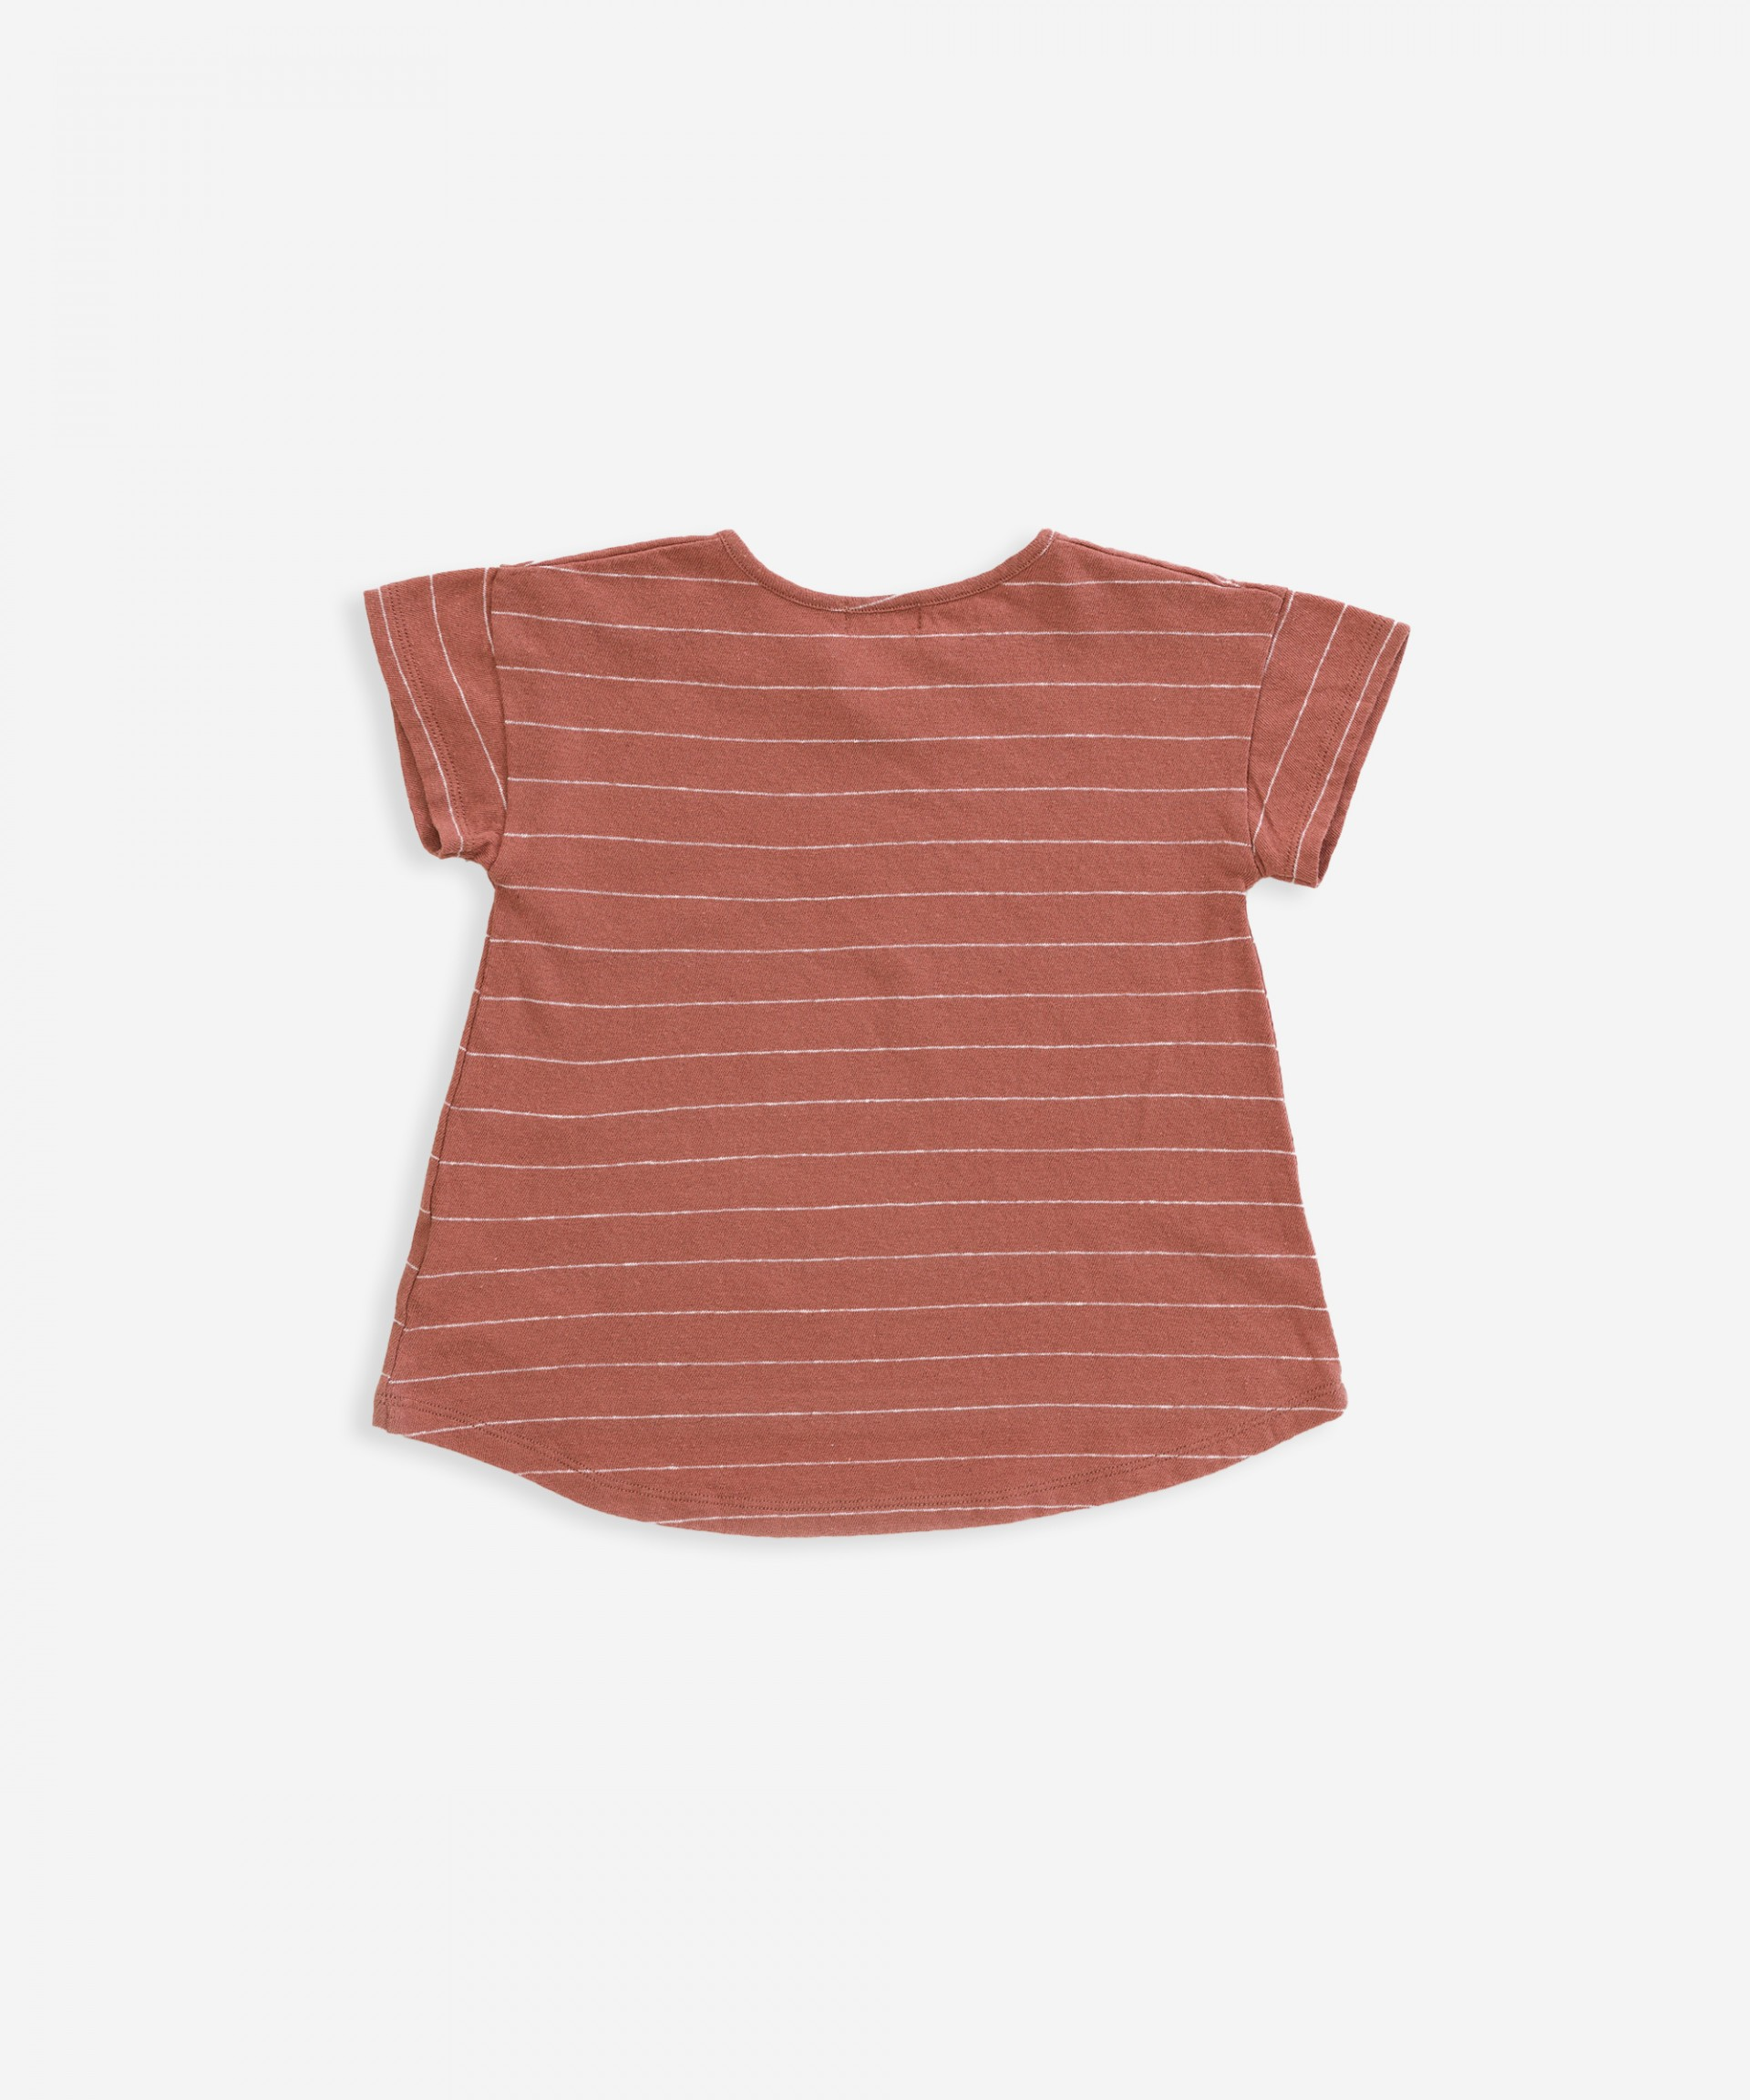 T-shirt in cotton-linen with stripes | Weaving